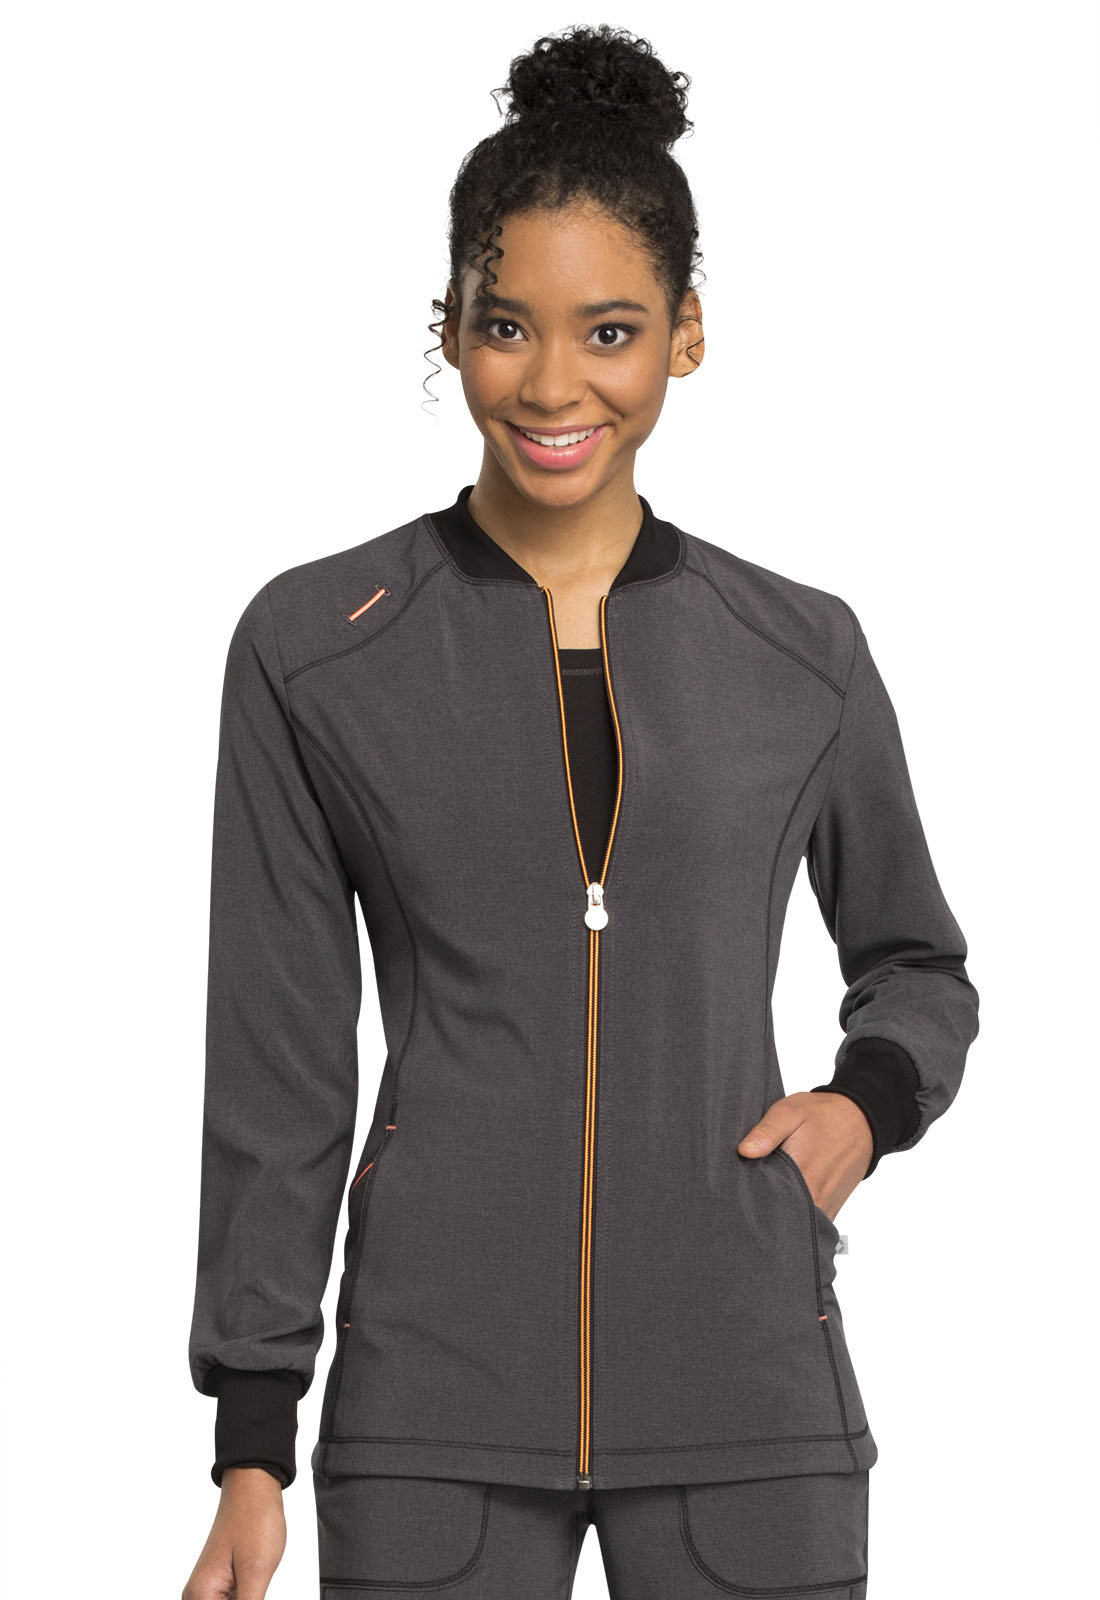 d2bcb204e87 Infinity Zip Front Warm-up in Heather Charcoal CK380A-HTCH from ...